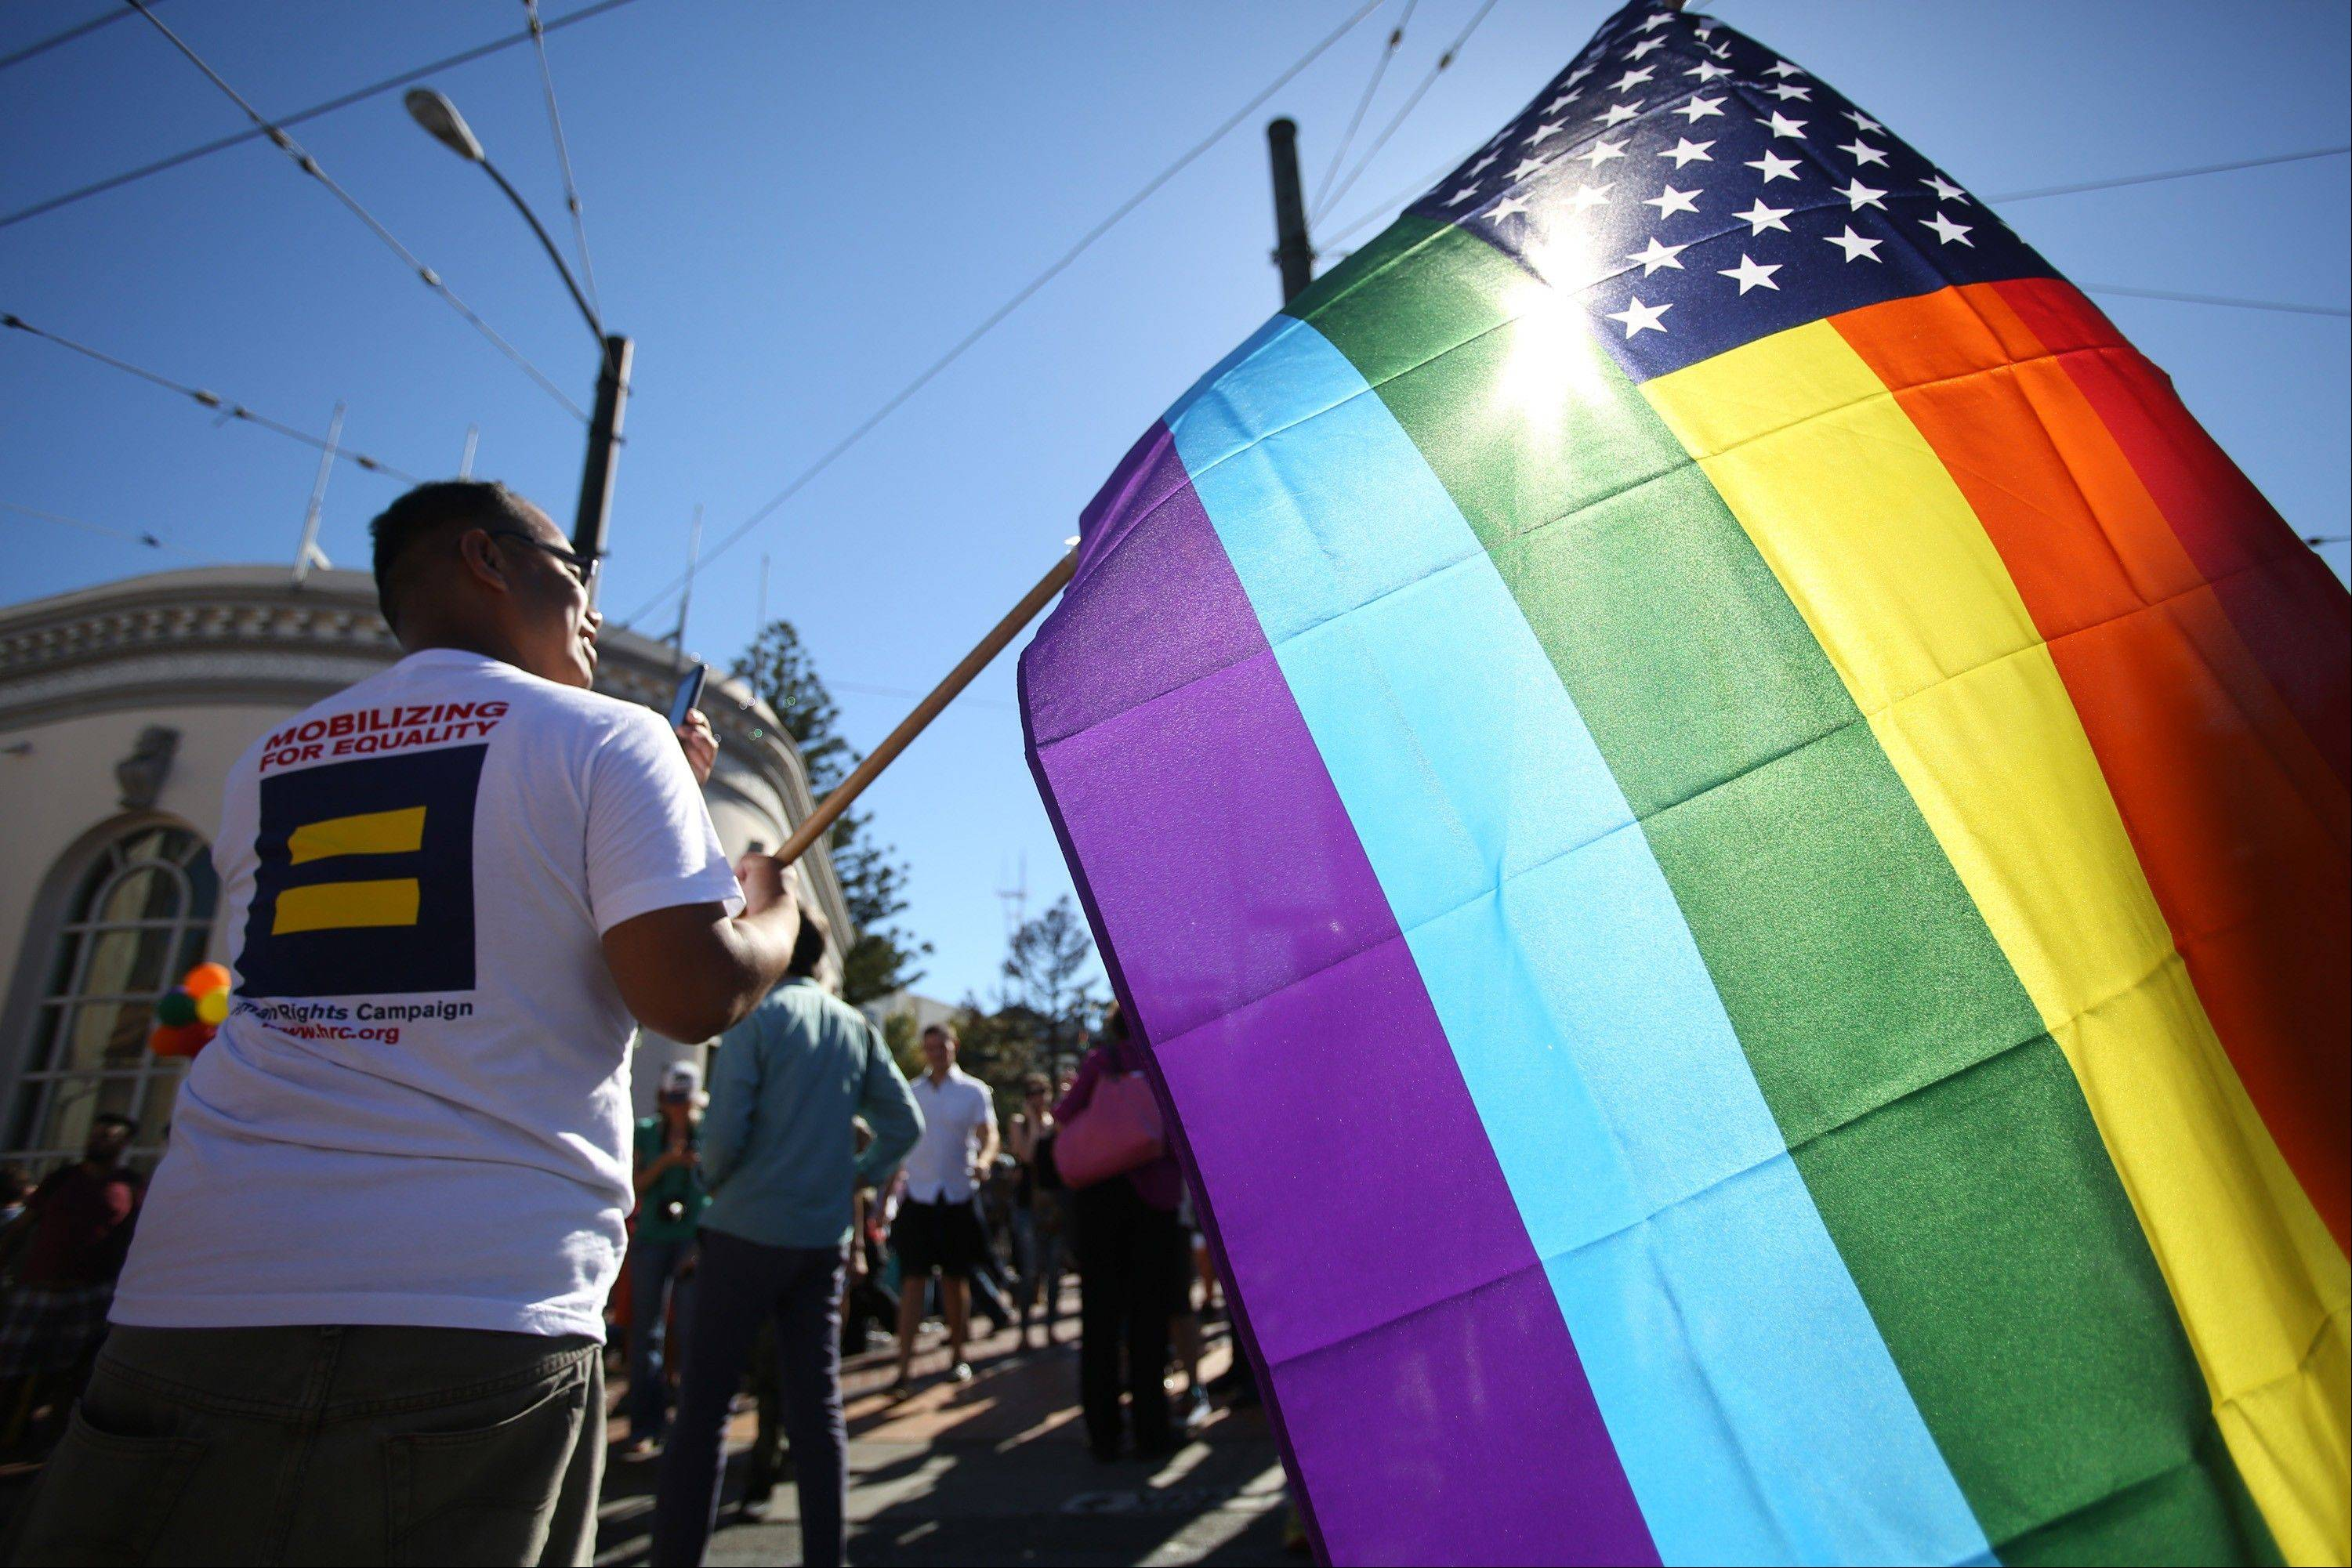 Larry Pascua carries a rainbow flag at a celebration for the U. S. Supreme Court�s rulings on Prop. 8 and the Defense of Marriage Act in the Castro District in San Francisco, on Wednesday, June 26, 2013.